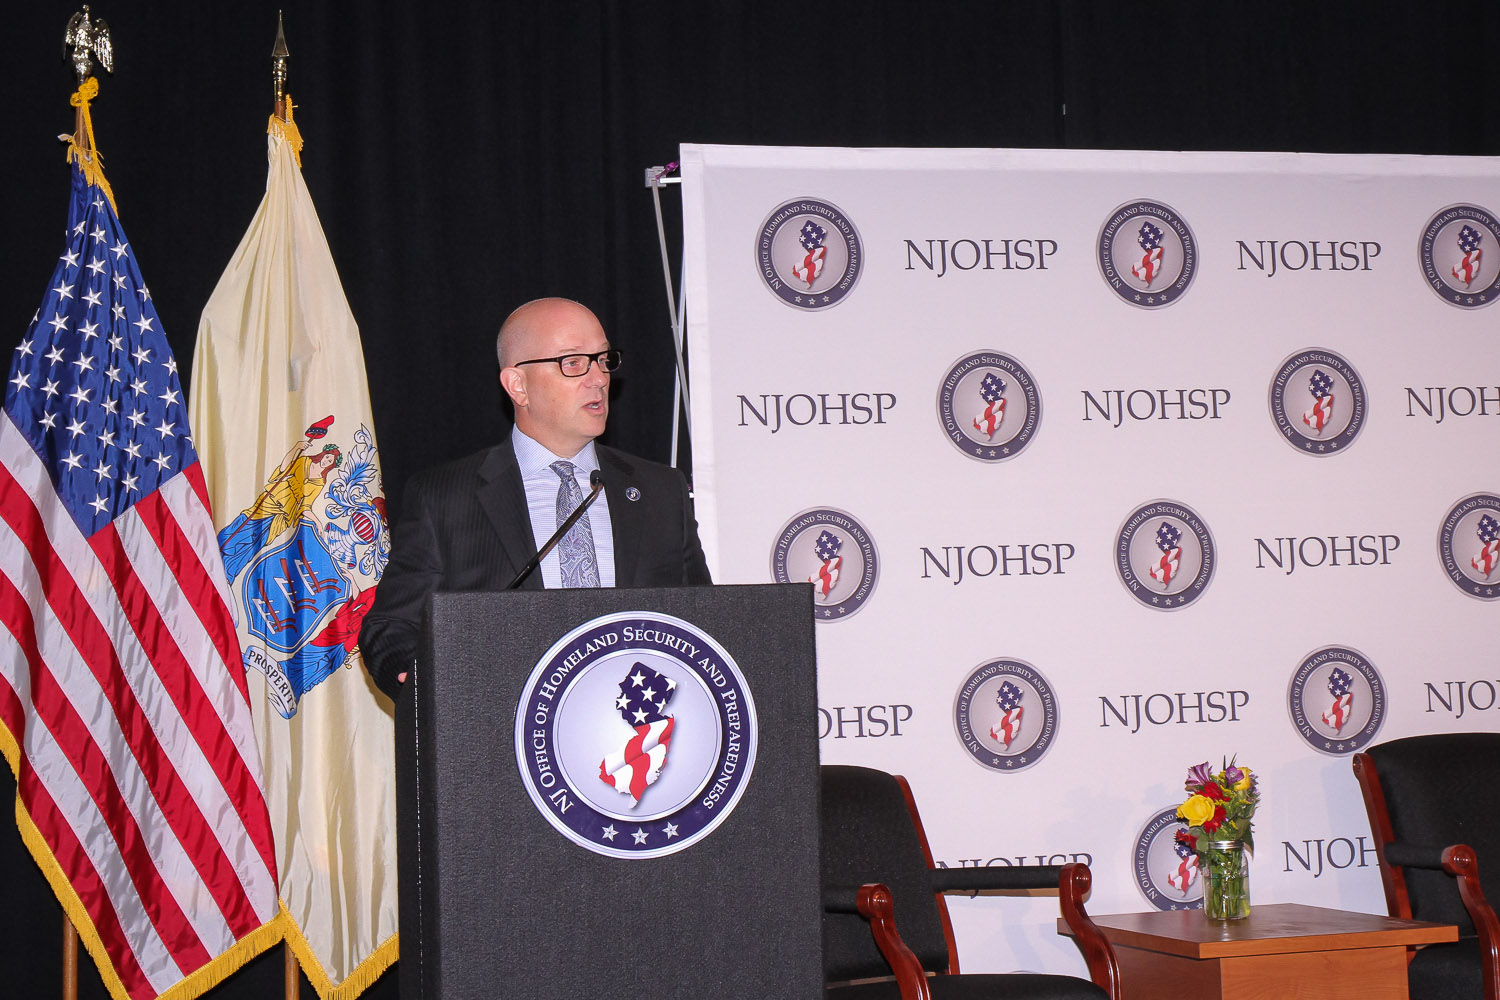 NJOHSP